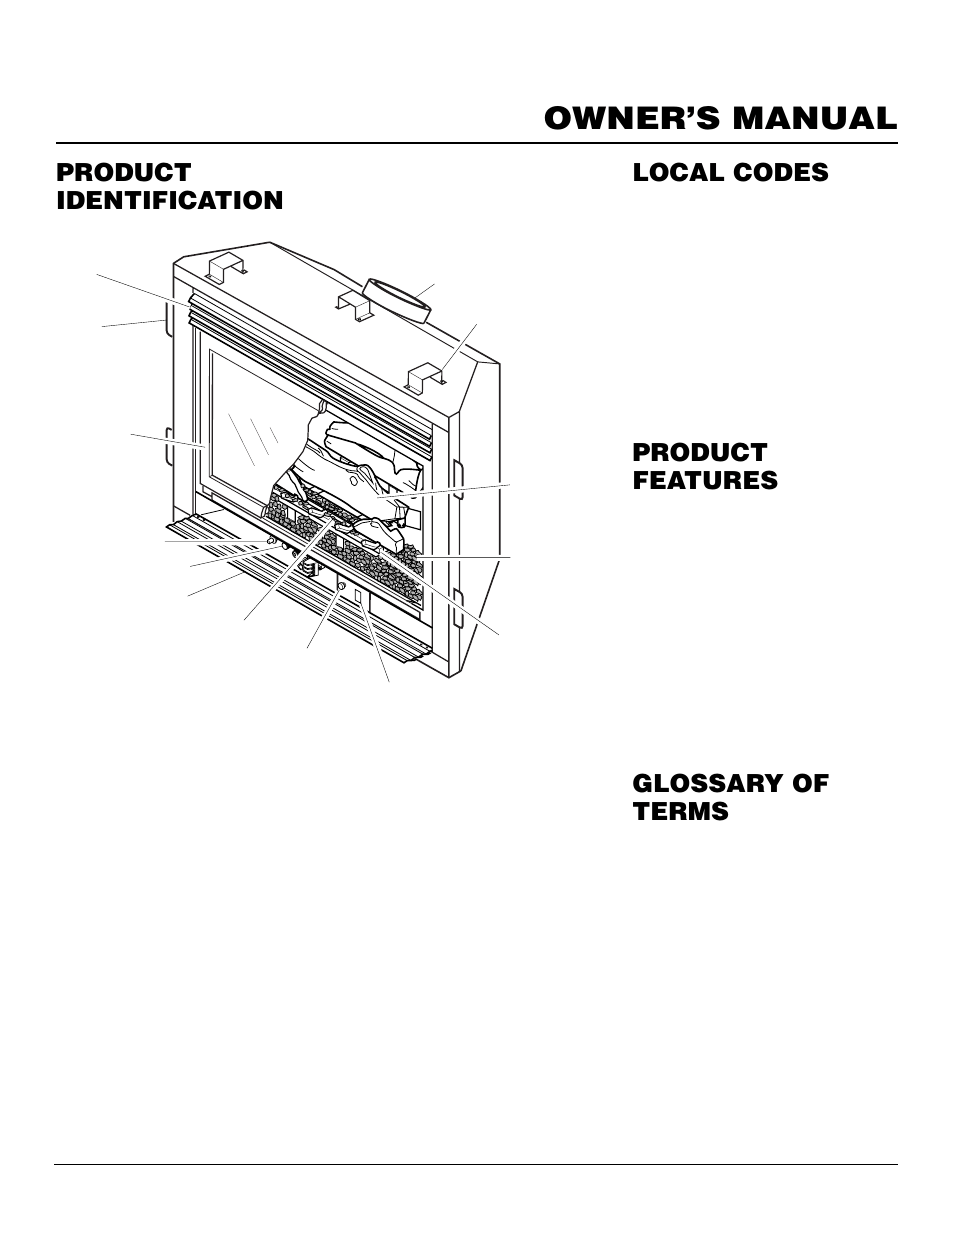 Owner's manual, Product identification, Local codes